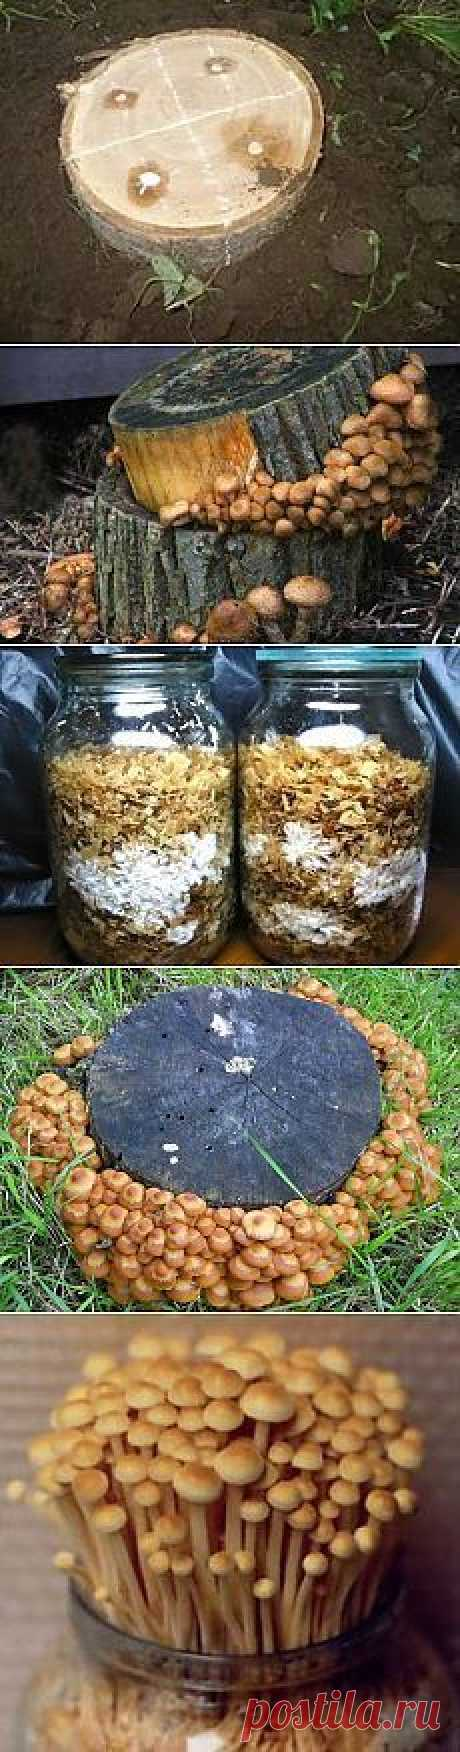 How independently to grow up or cultivate mushrooms honey agarics in house conditions. The description of techniques and technologies of cultivation of summer and autumn honey agarics on a personal plot on stubs, in greenhouses, cellars and in banks on a window sill